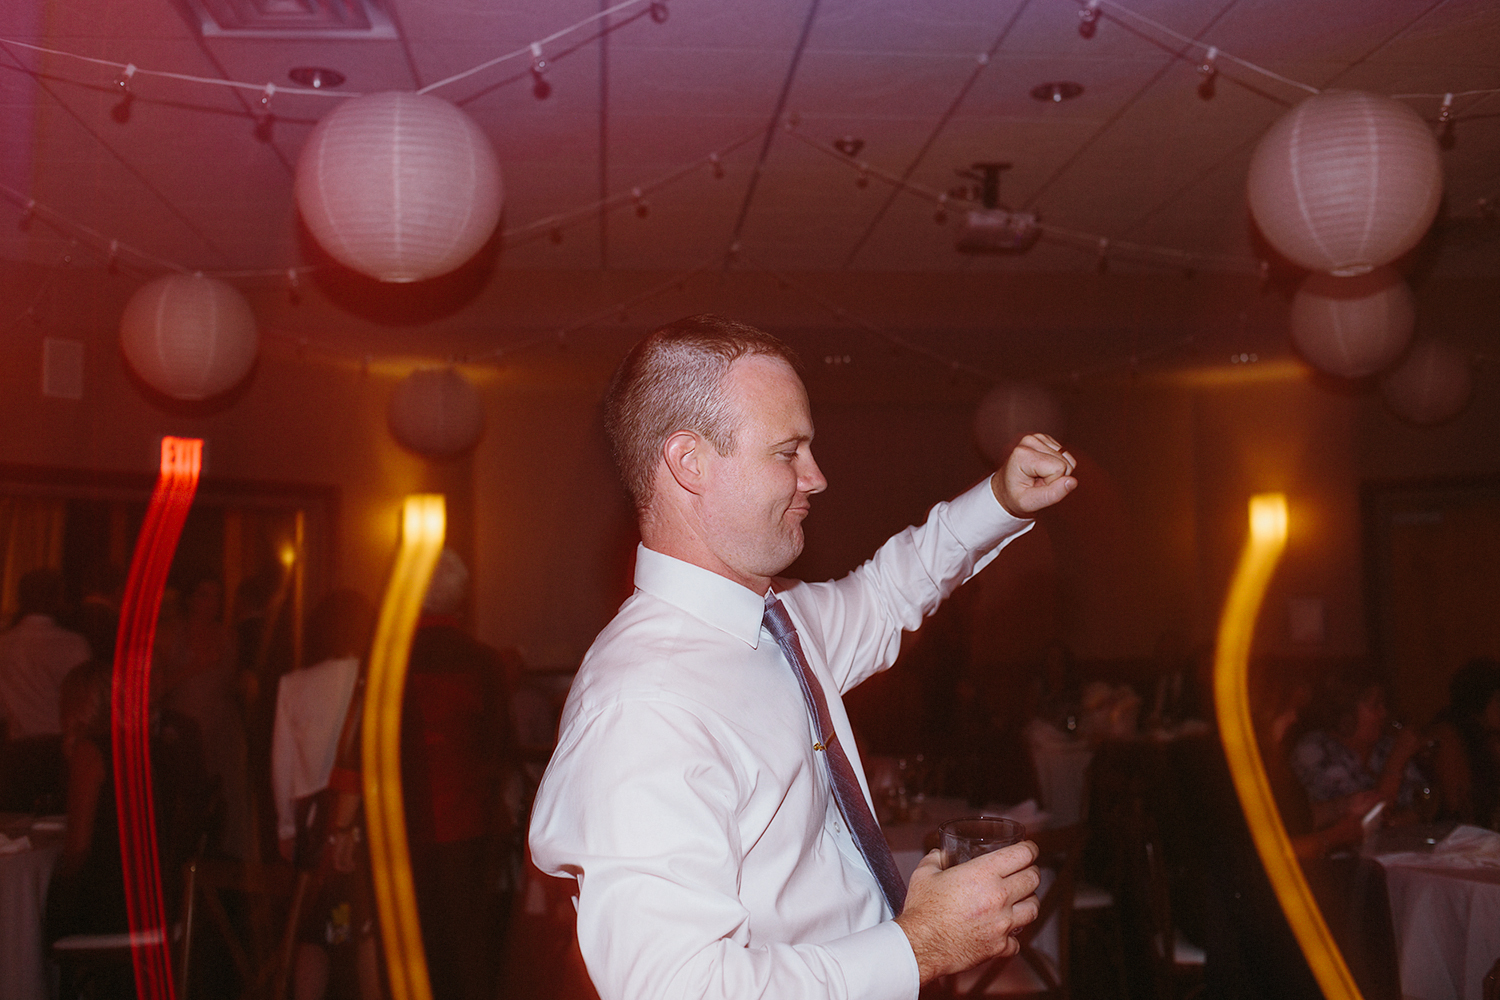 groom-dancing-partying-live-band-at-reception-At-Eganridge-Resort-Venue-Muskoka-Ontario-Wedding-Photography-by-Ryanne-Hollies-Photography-Toronto-Documentary-Wedding-Photographer.jpg